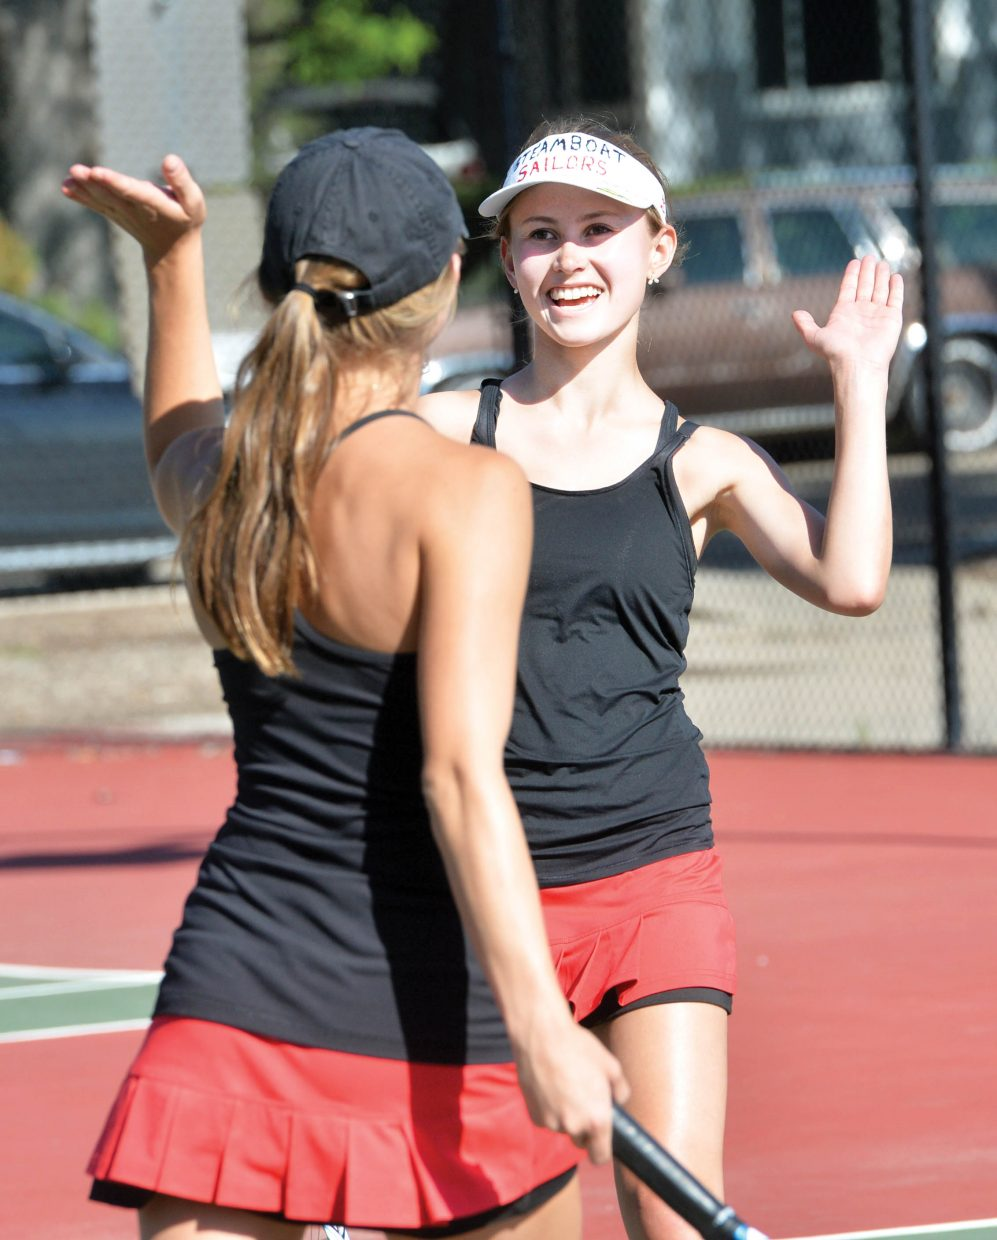 Steamboat's No. 2 doubles players Sydney Boyd and Sabina Berend exchange a high five during the first day of the Colorado 4A State High School Tennis Championships at Pueblo City Park. The team won its opening round match but fell in the semifinals.